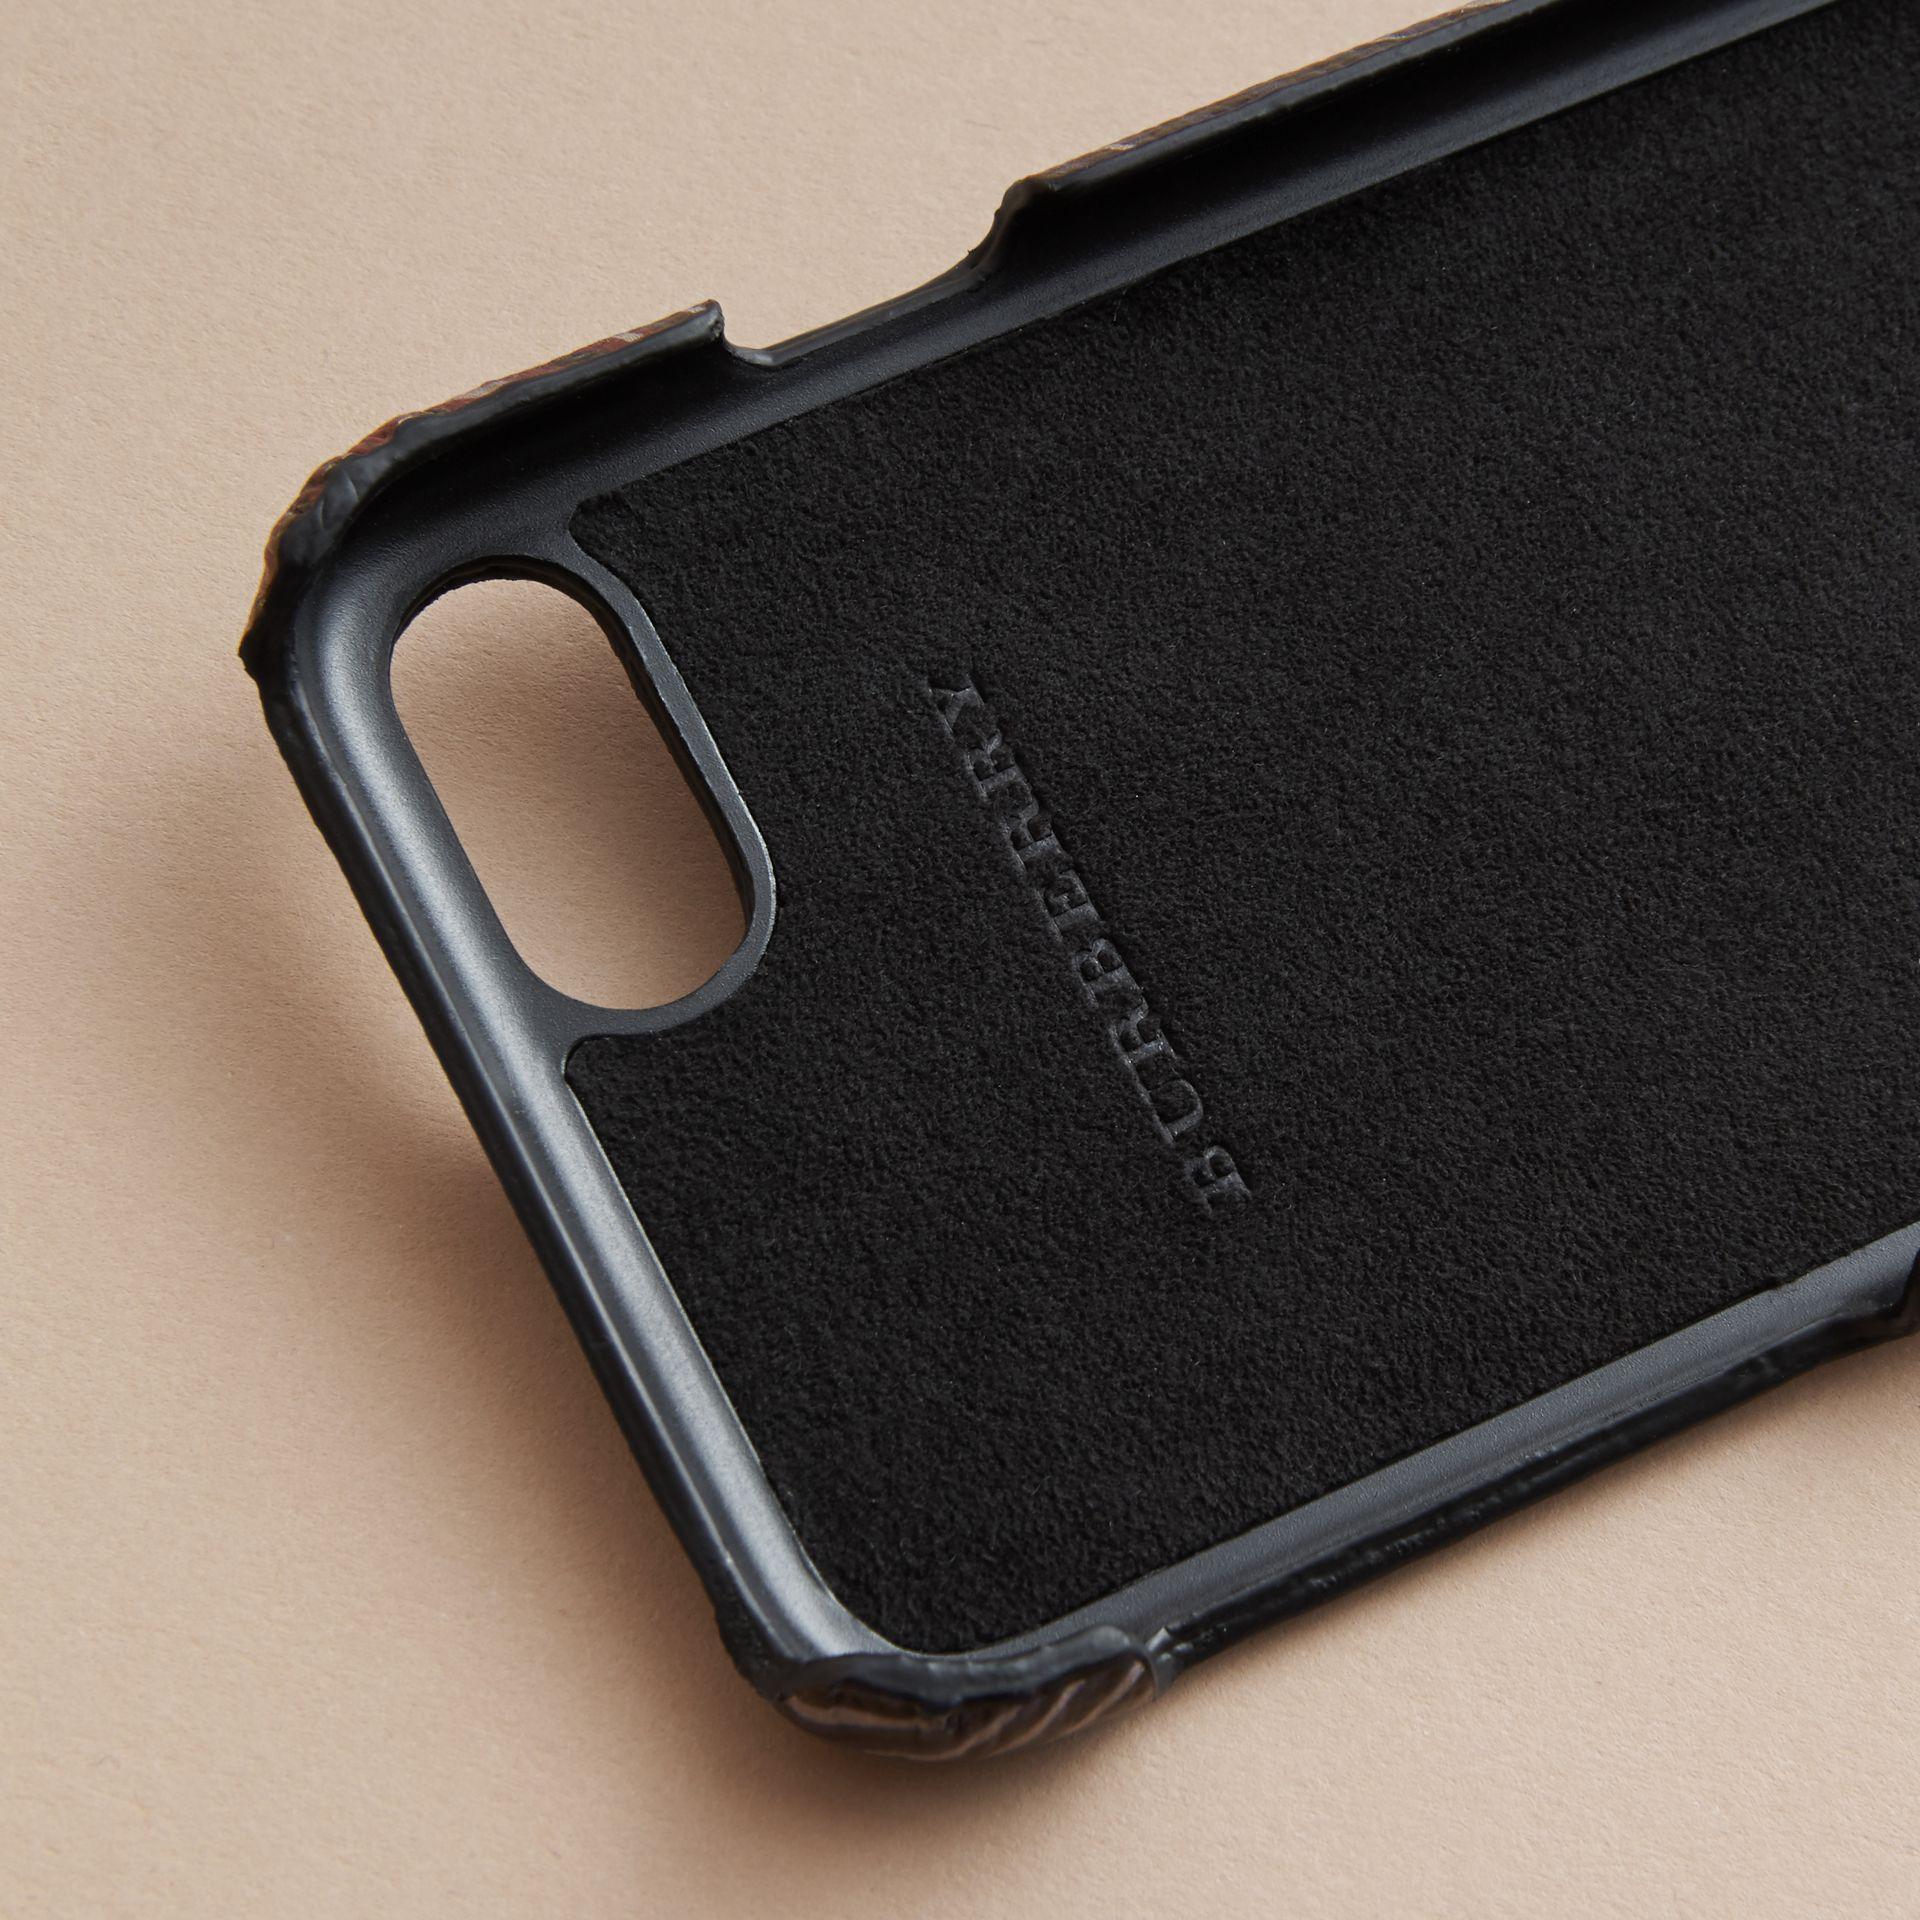 Beasts Print London Leather iPhone 7 Case in Navy Grey - Men | Burberry - gallery image 3